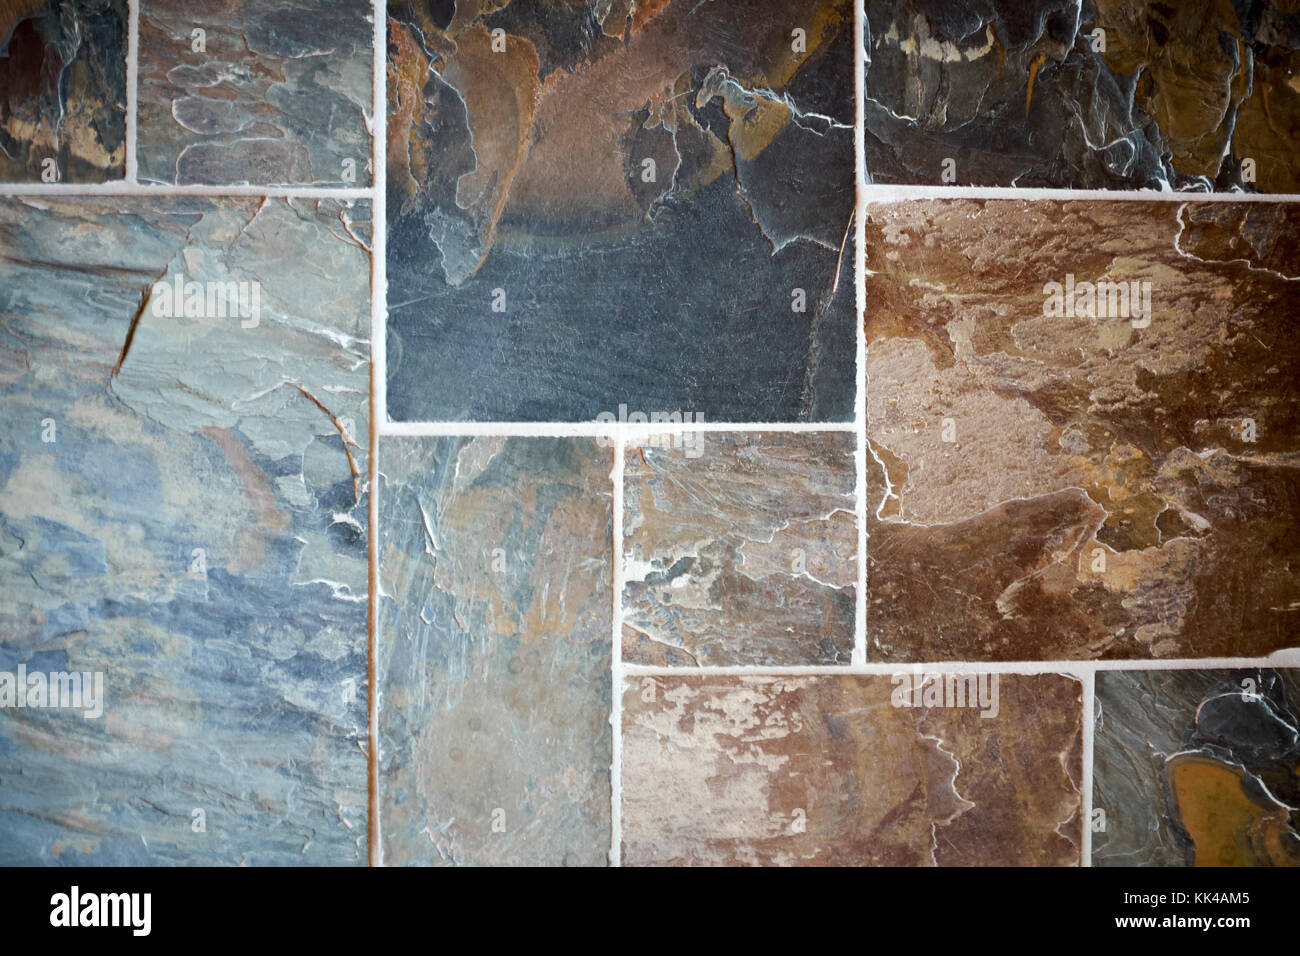 https www alamy com stock image decorative stonework with colorful slate tiles in blue and brown hues 166667989 html